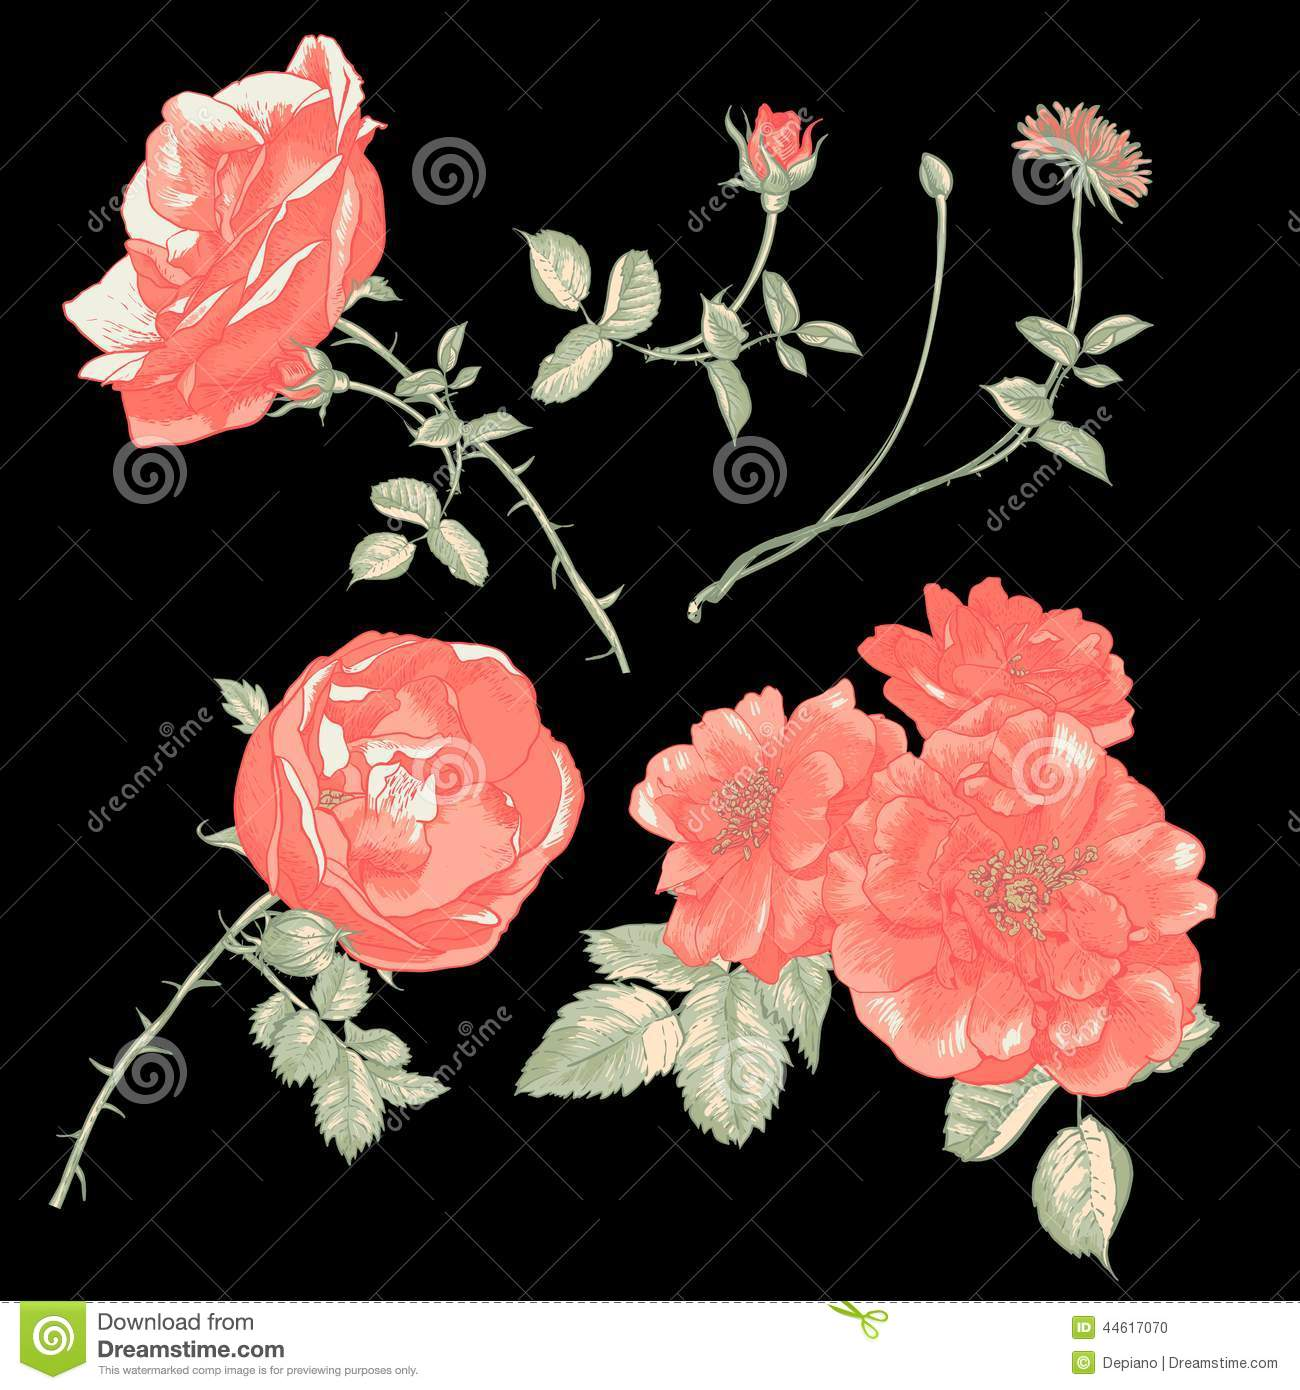 collection of floral design - photo #40